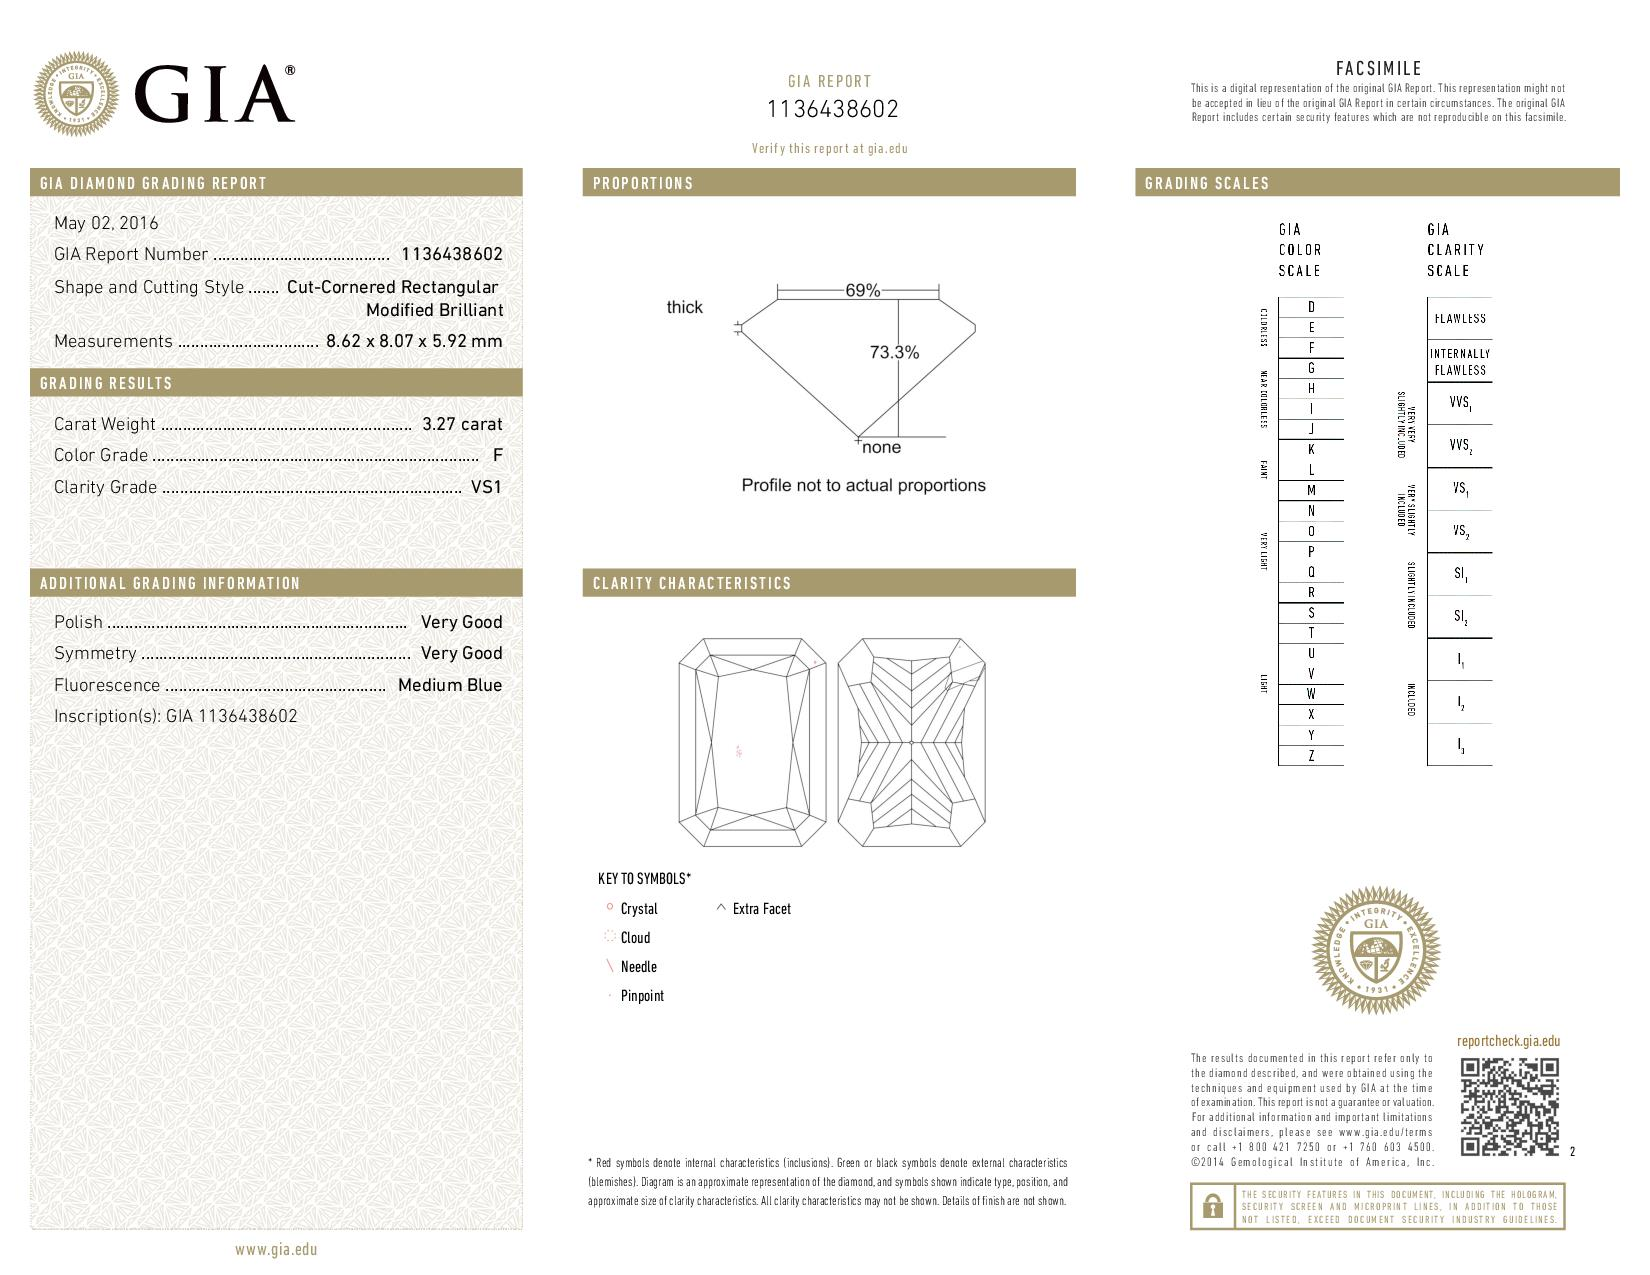 This is a 3.27 carat radiant shape, F color, VS1 clarity natural diamond accompanied by a GIA grading report.